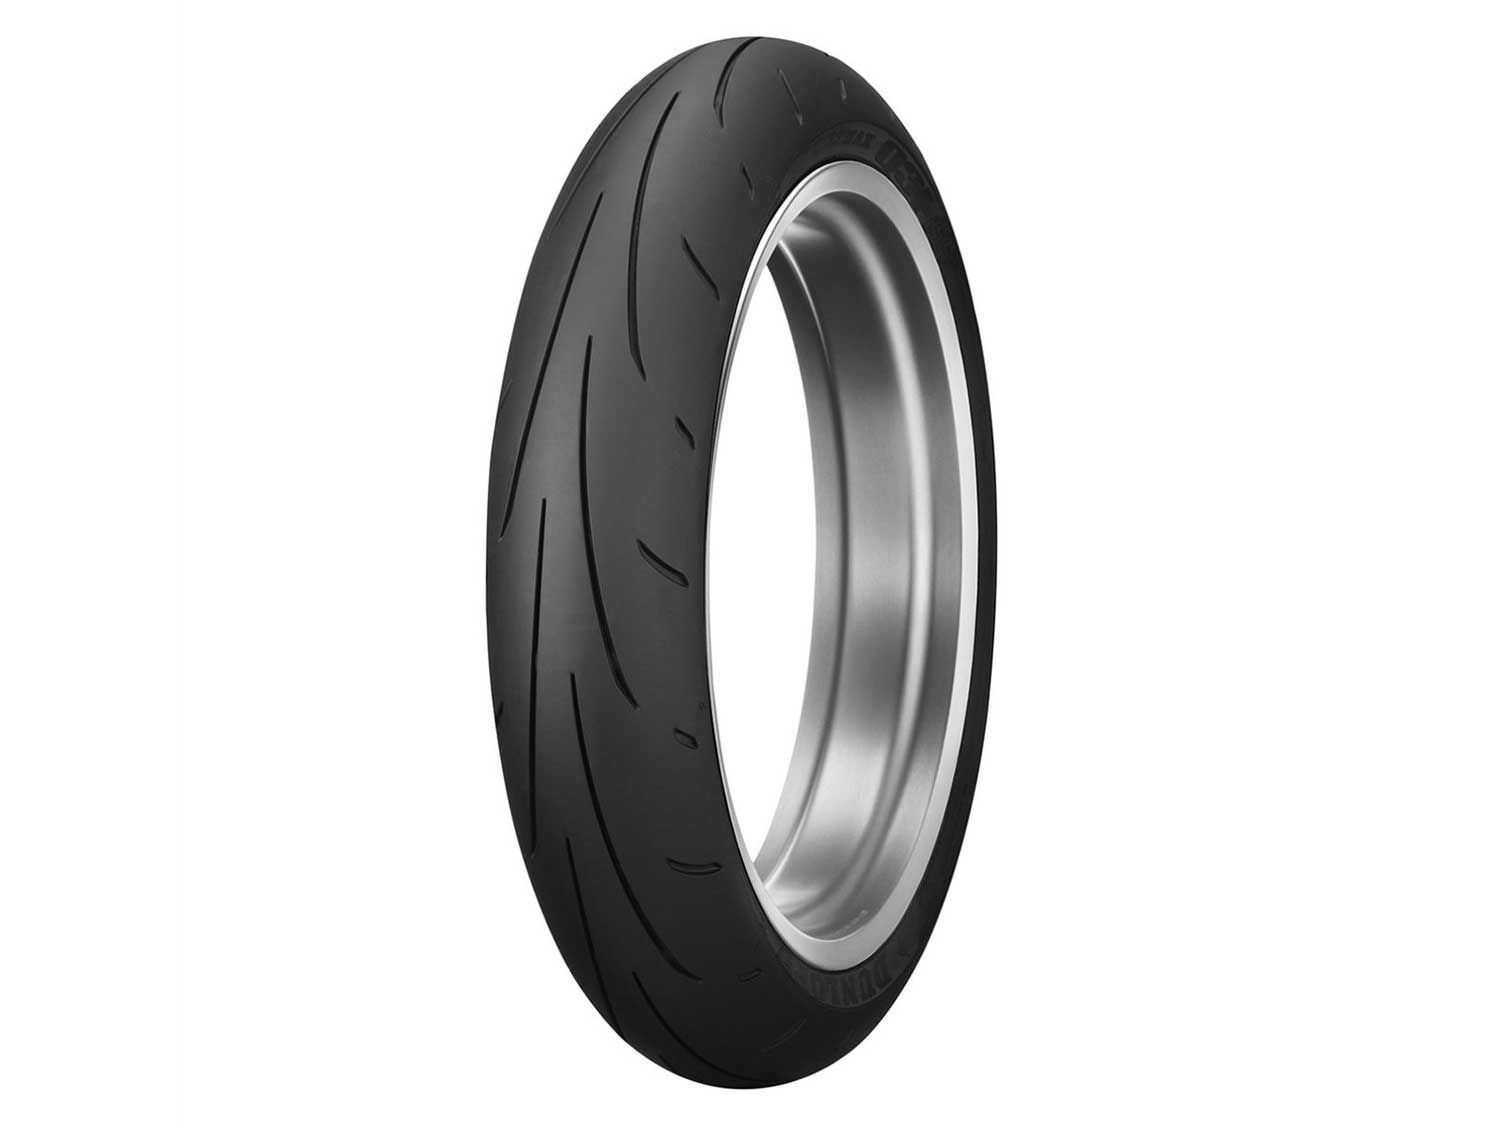 Sport motorcycles perform best with fresh rubber. And Dunlop offers the right shoe for the job with its Sportmax Q3+ tires. The Q3+ tires are designed as a do-it-all tire solution for sport riders who ride in any road condition, both on the street and racetrack. These Sportmax hoops stand out with fast warm-up time, sharp but not overly so contour, and high level of adhesion against asphalt. The icing on the cake is their impressive levels of durability and competitive price tag.